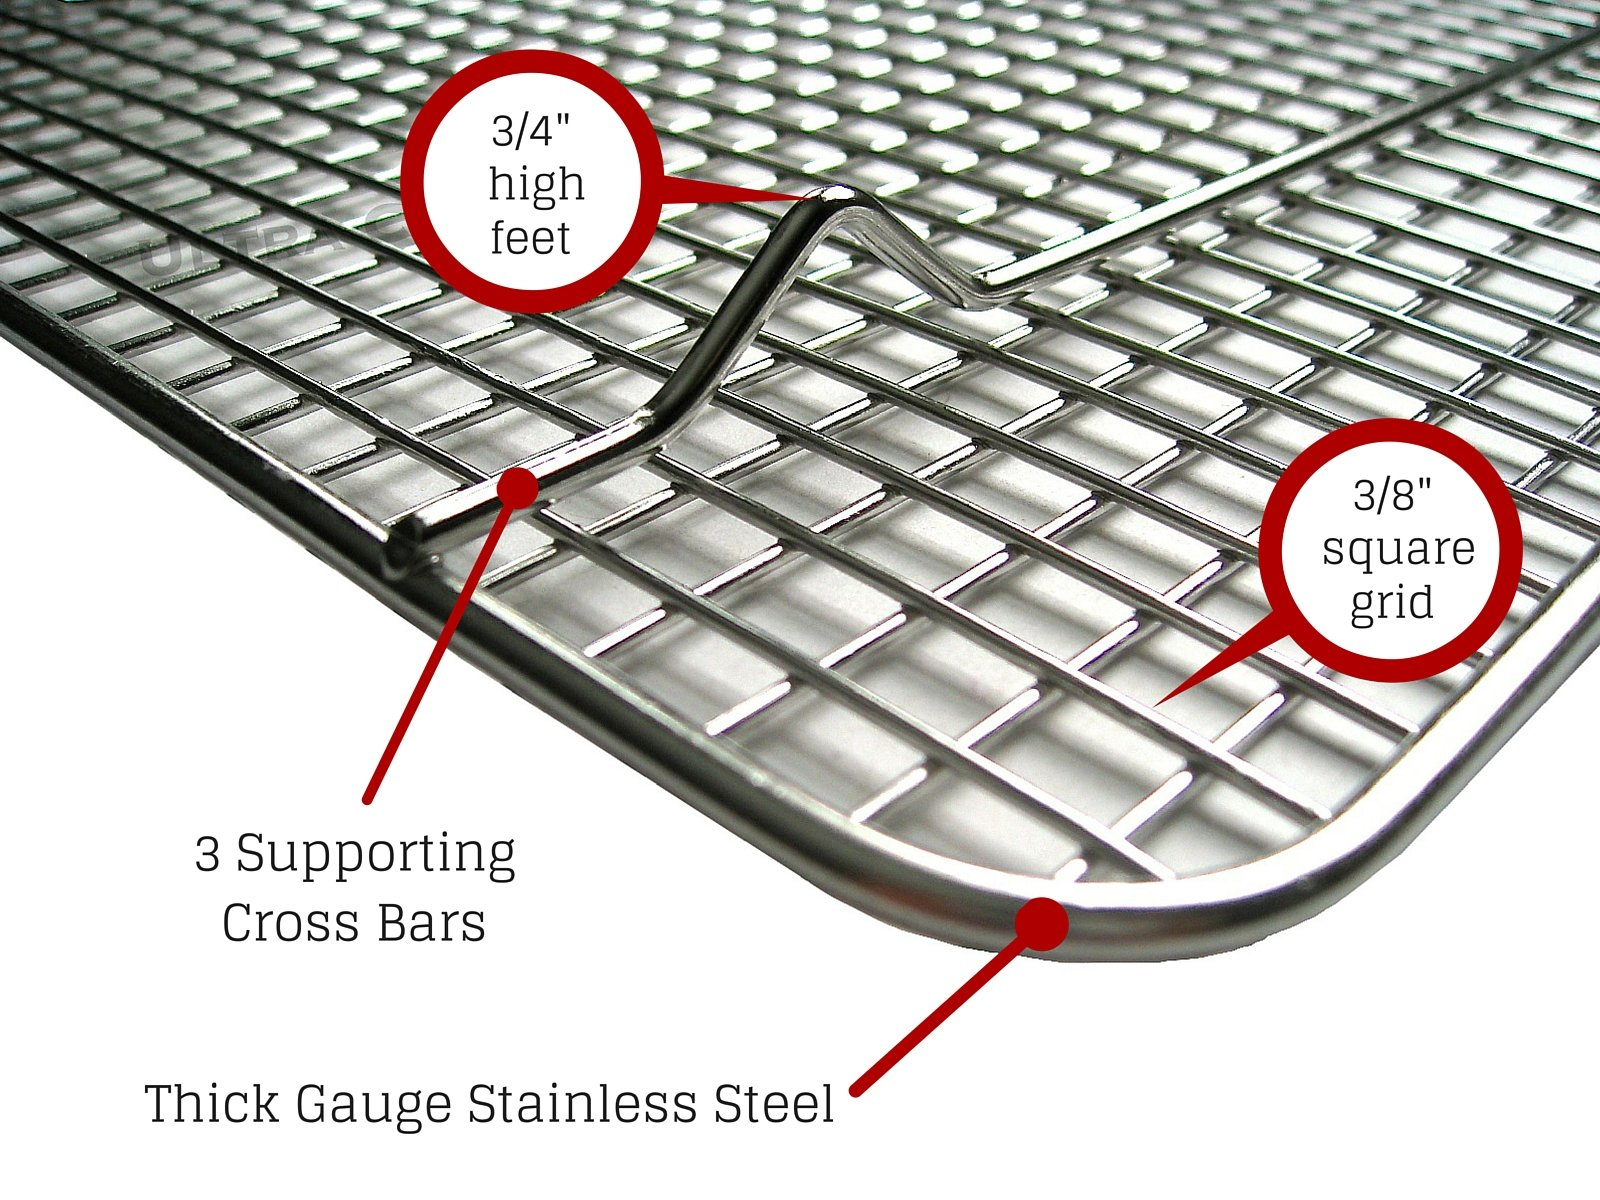 """Cooling, Baking & Roasting Wire Racks for Sheet Pans - 100% Stainless Steel Metal Racks for Cooking - Dishwasher Safe, Rust Resistant, Heavy Duty 3 COMMERCIAL GRADE 304 (18/8) STAINLESS STEEL COOLING RACK offers superior rust resistance and long-lasting quality FITS LARGE 13""""x18"""" BAKING & COOKIE SHEETS perfectly inside the food pan HEAVY DUTY WIRE GRID WITH 3 SUPPORT CROSS BARS create a raised design for best air circulation"""